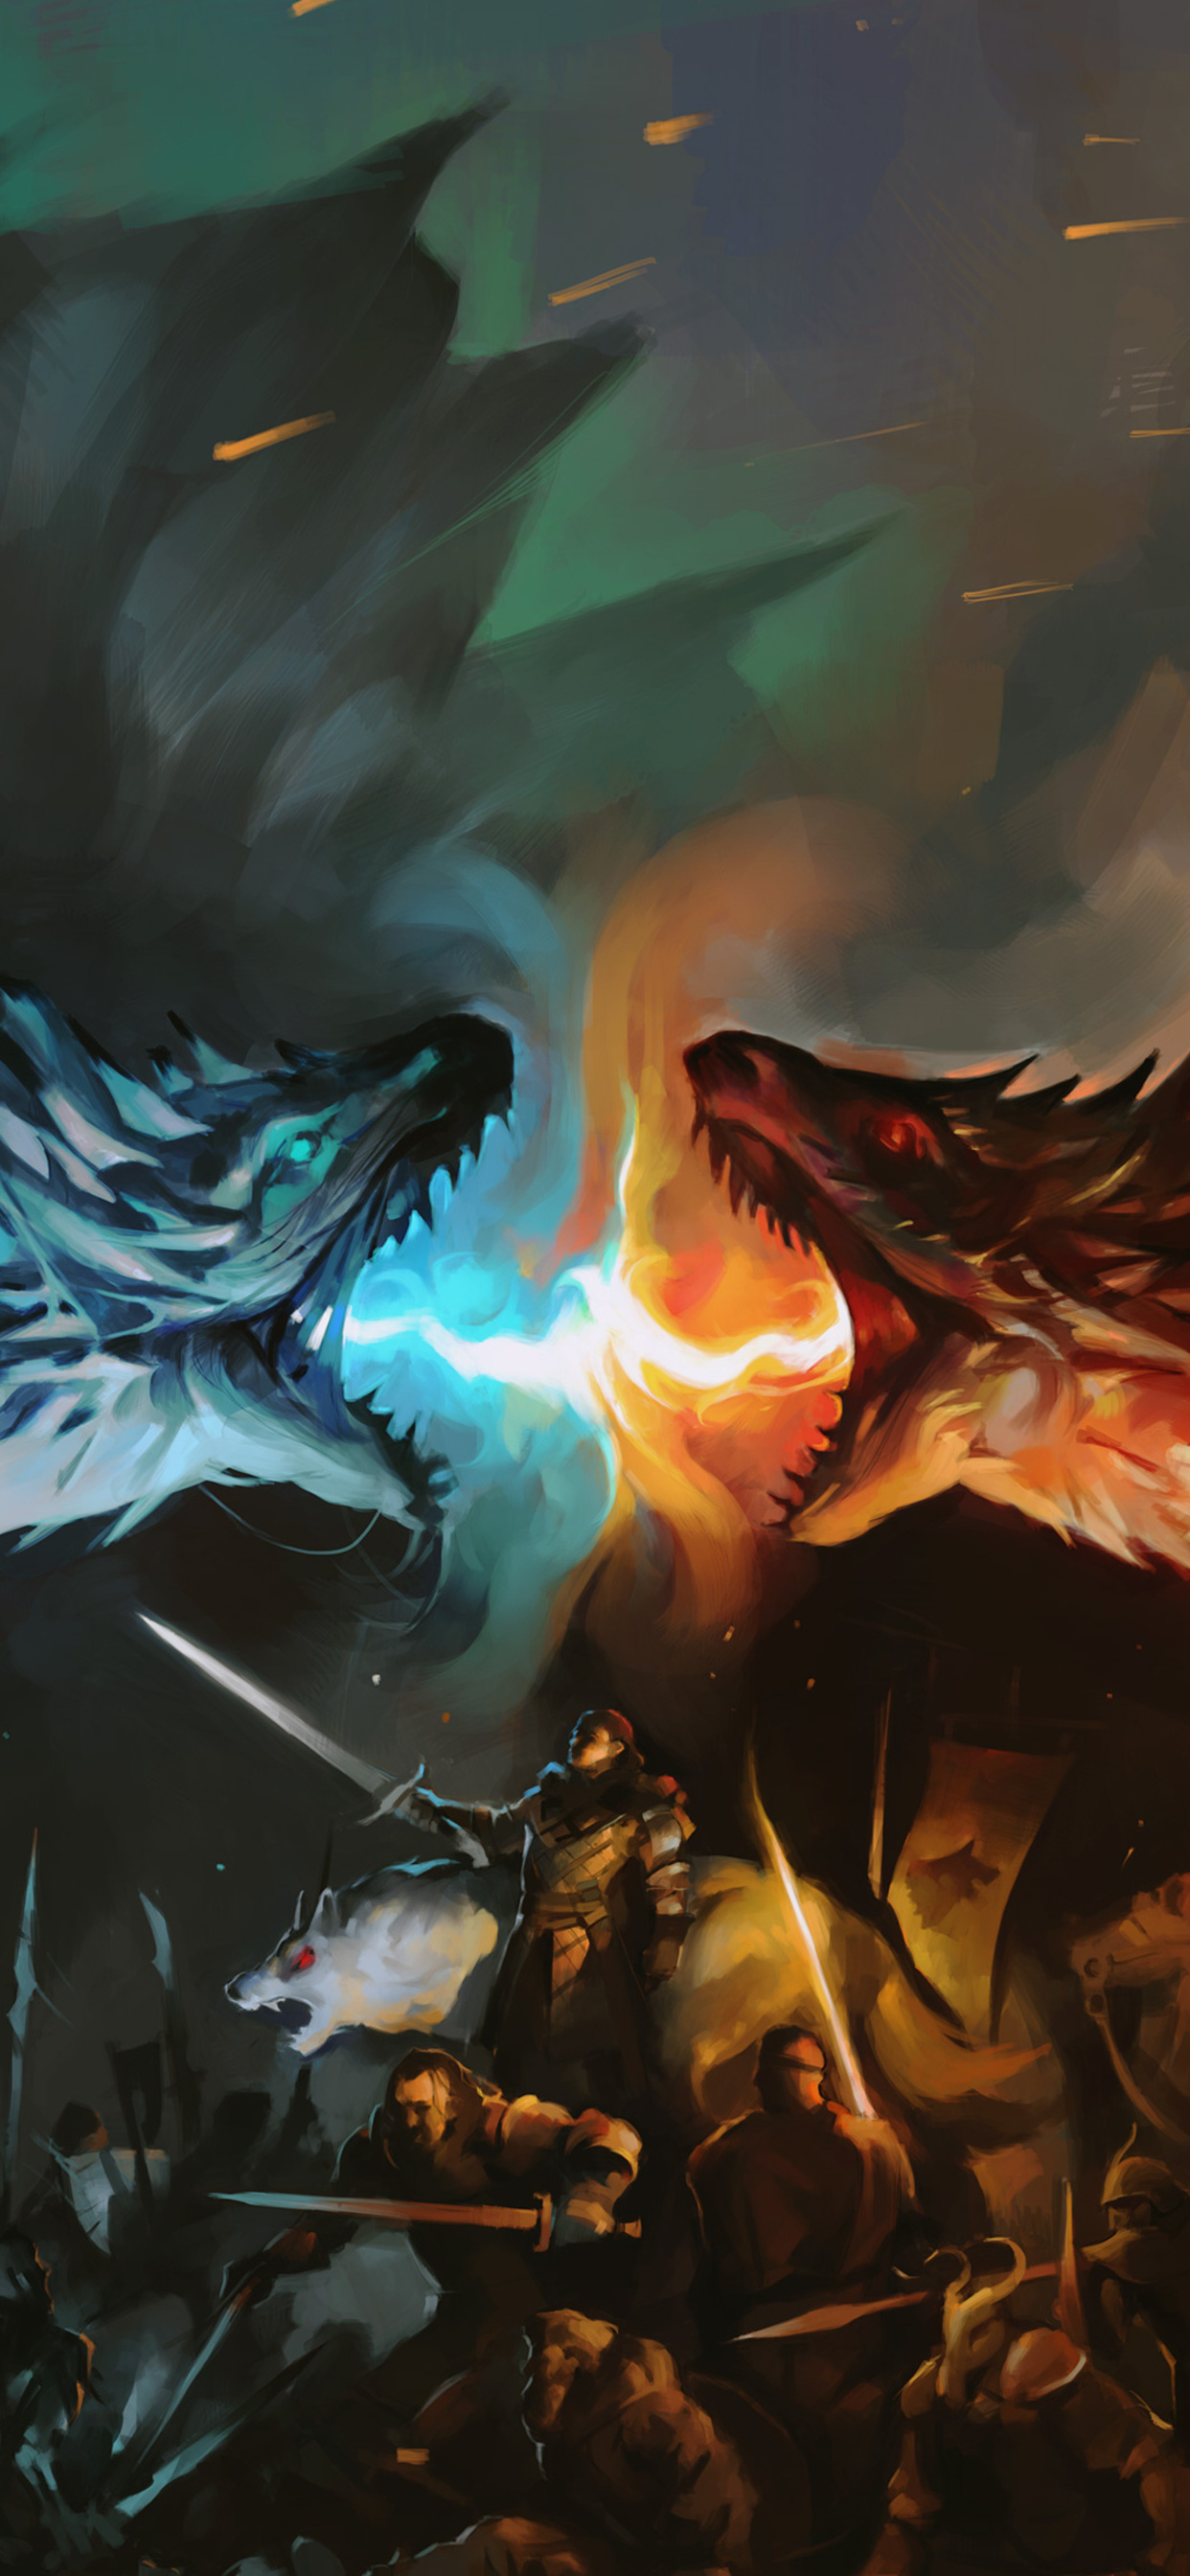 night-king-and-khaleesi-fighting-with-dragons-artwork-na.jpg